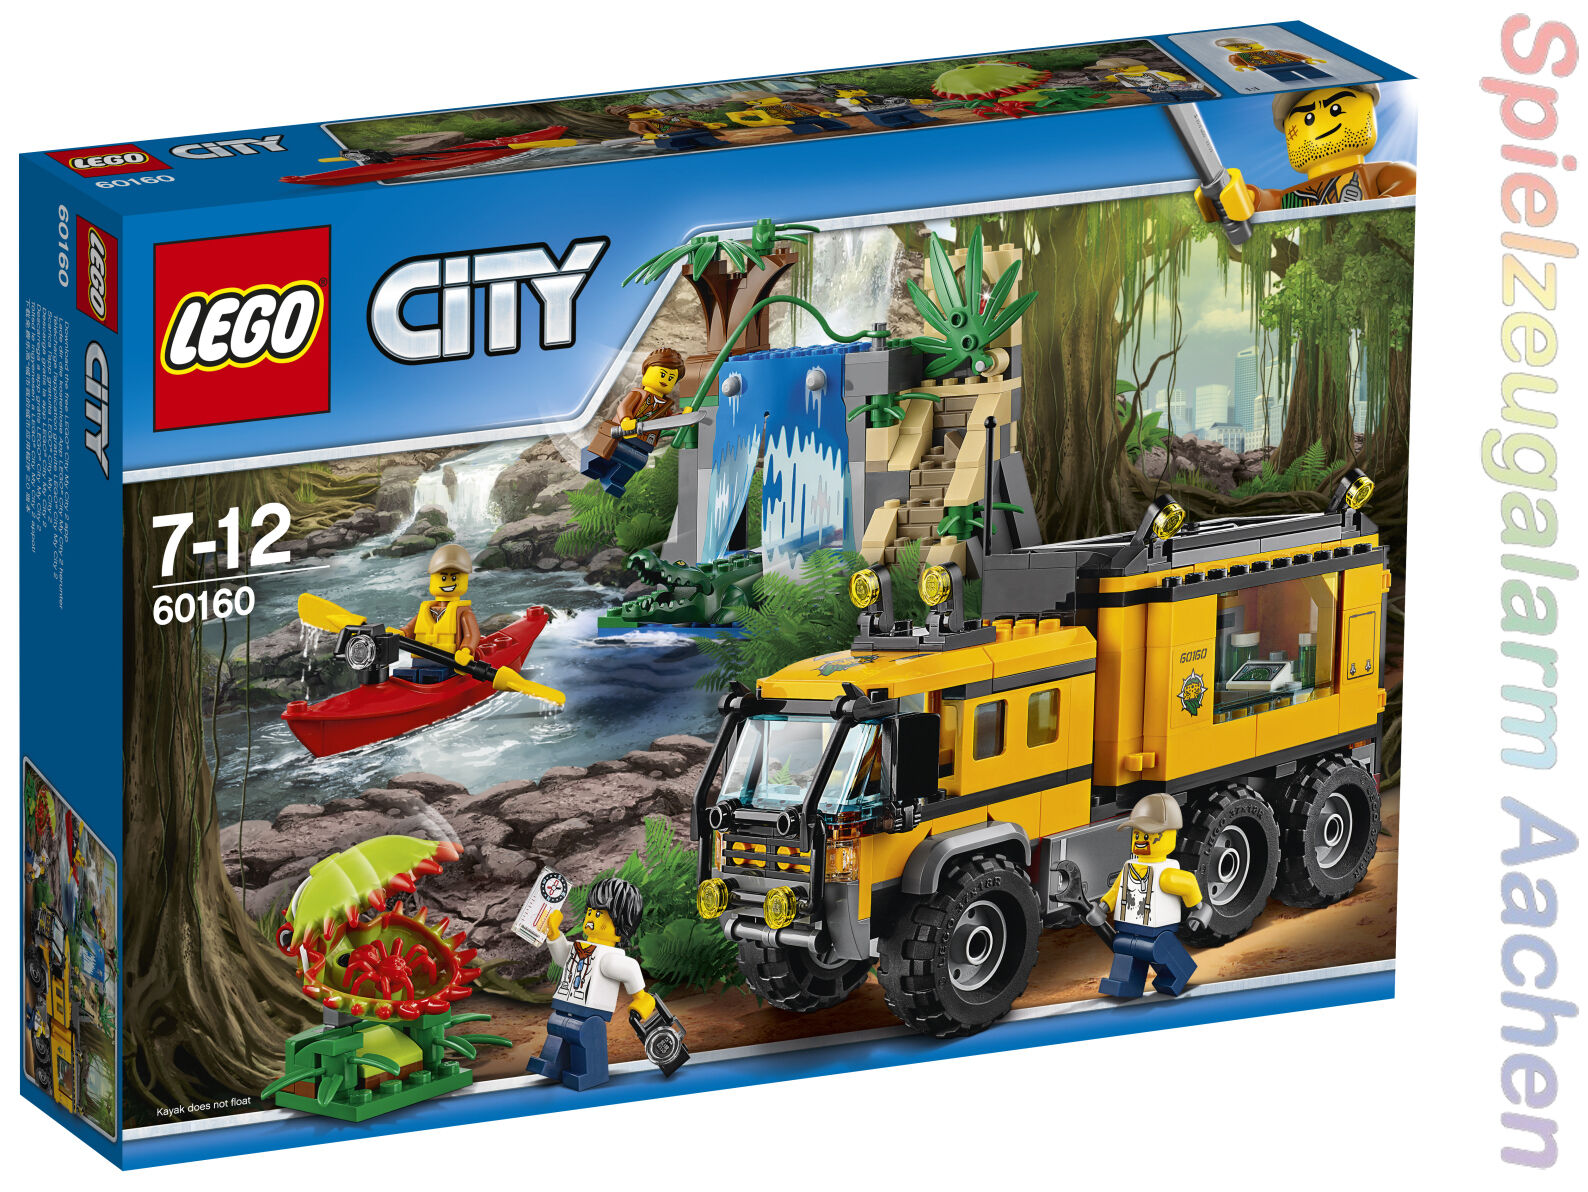 LEGO City Jungle Explorers Mobiles Dschungel-Labor 60160 N7 17